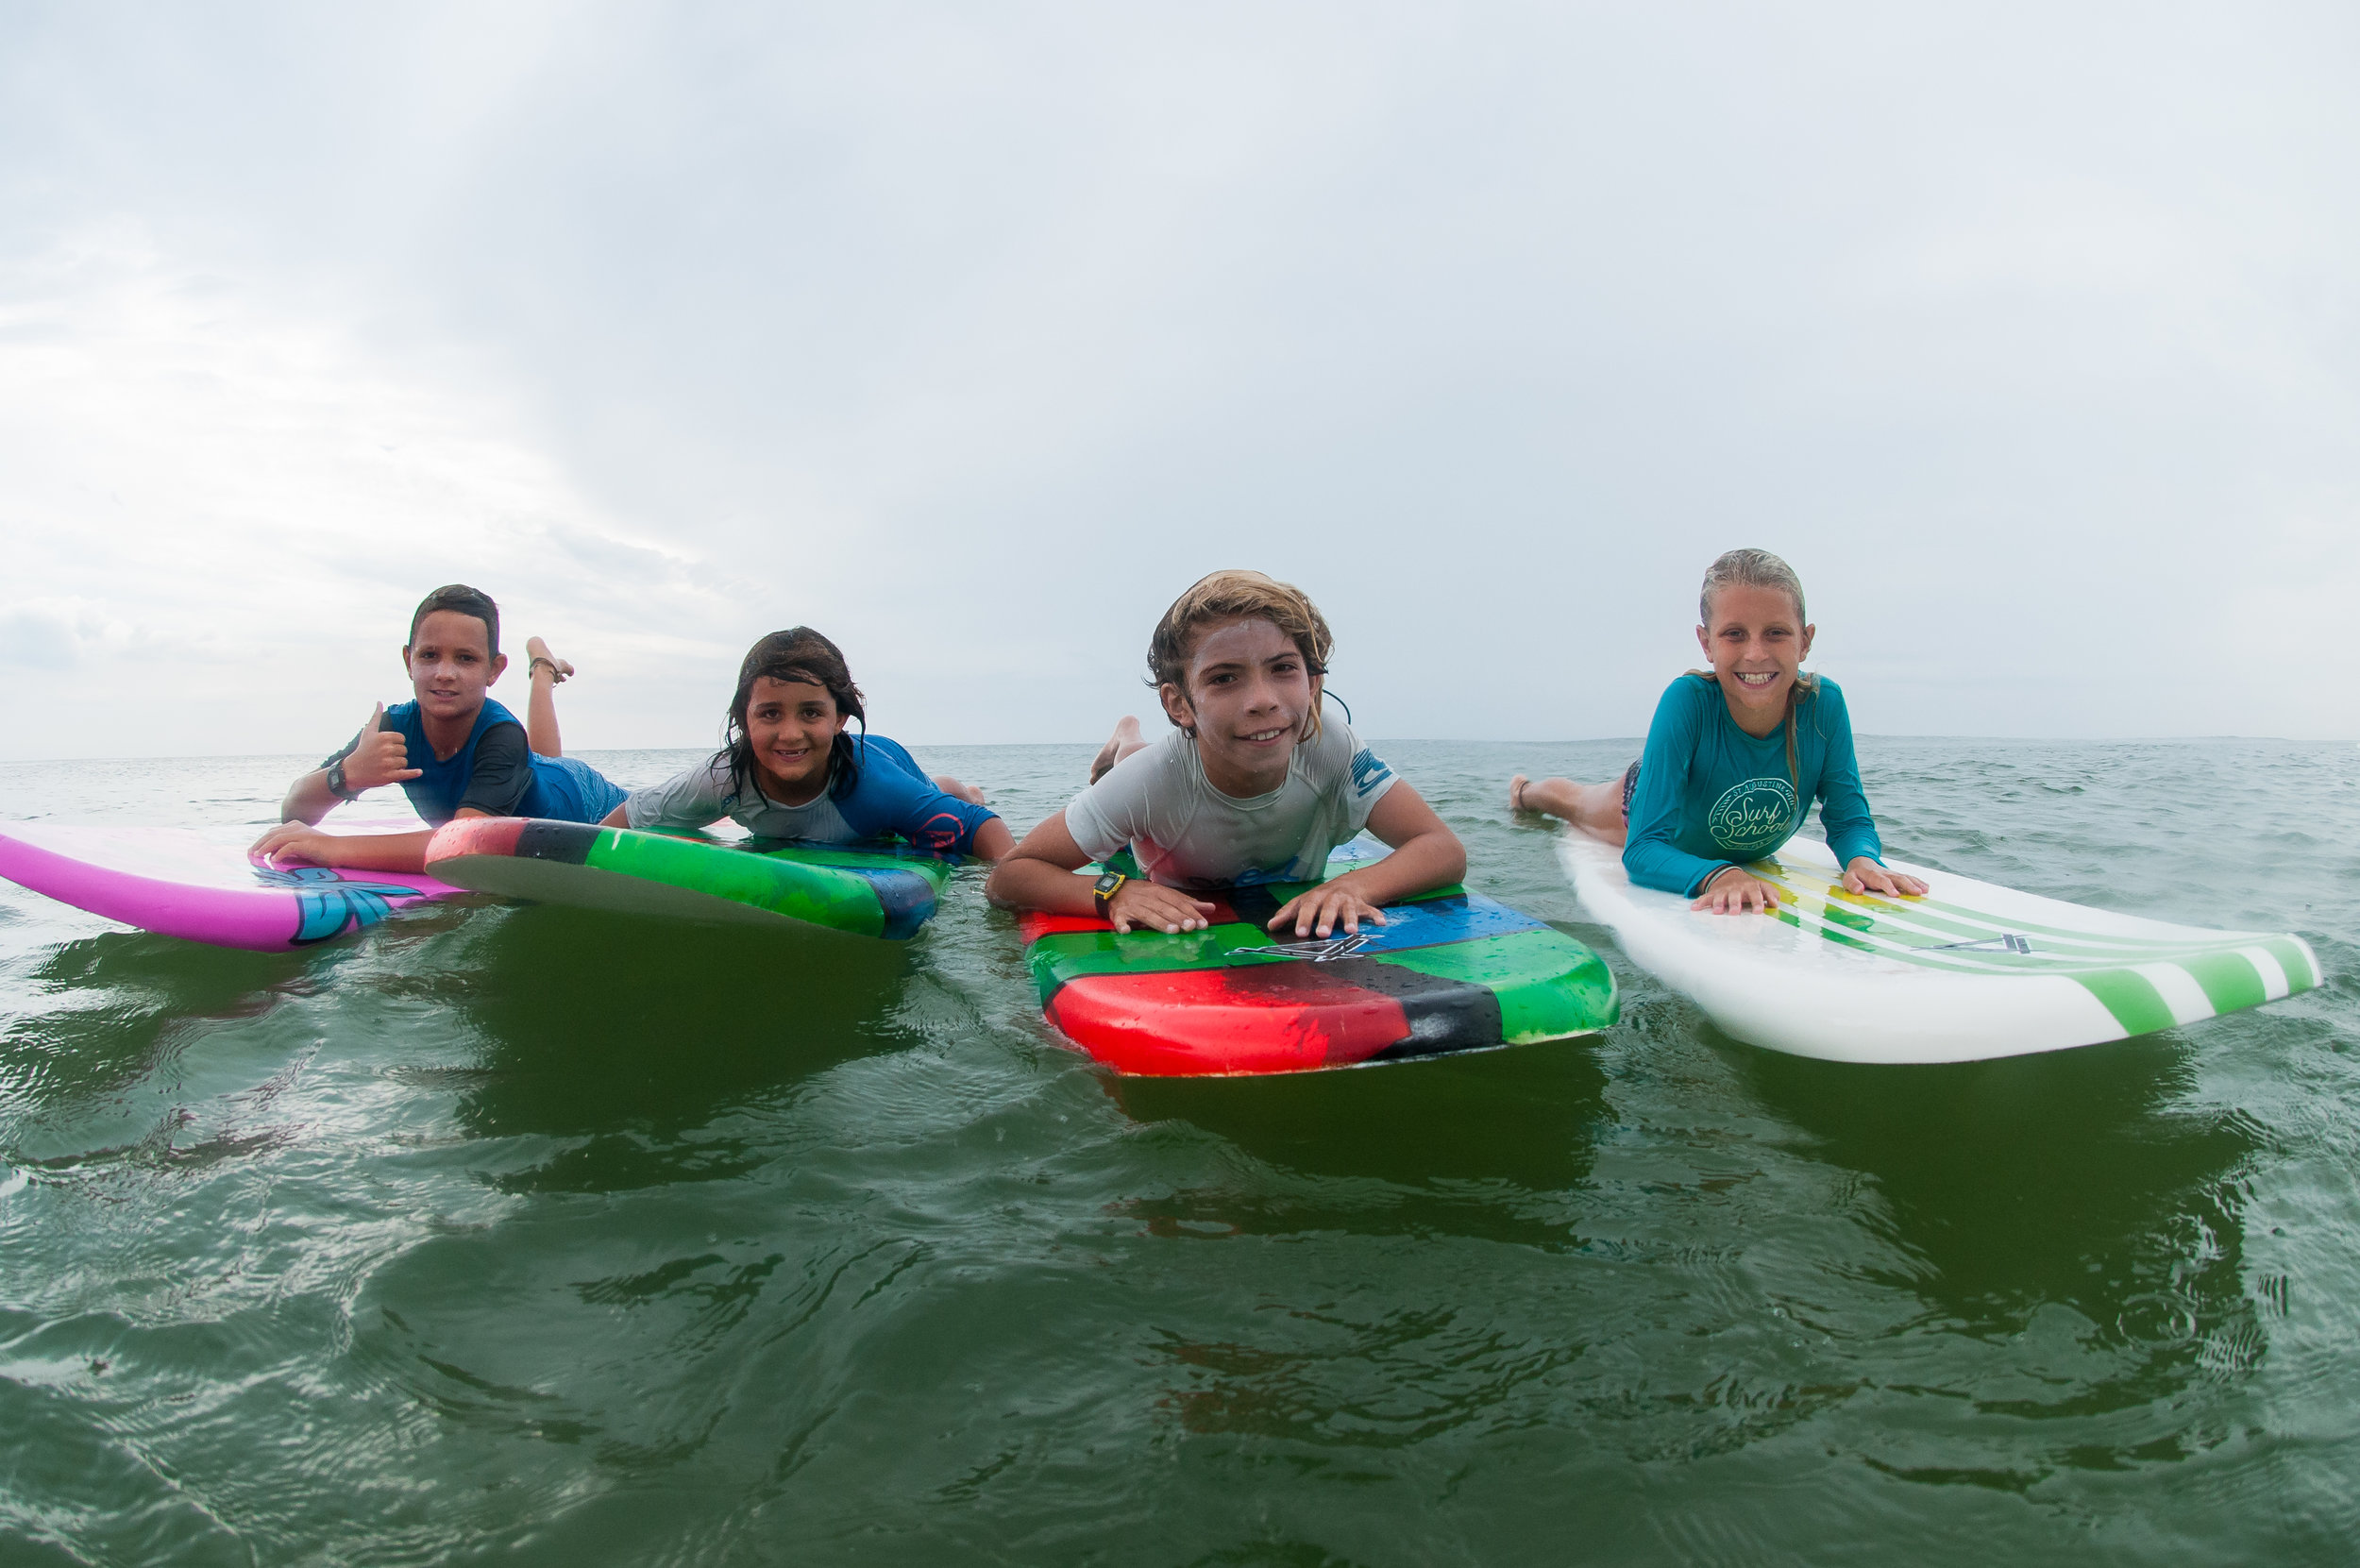 Sunny surfing and having fun with her friends!